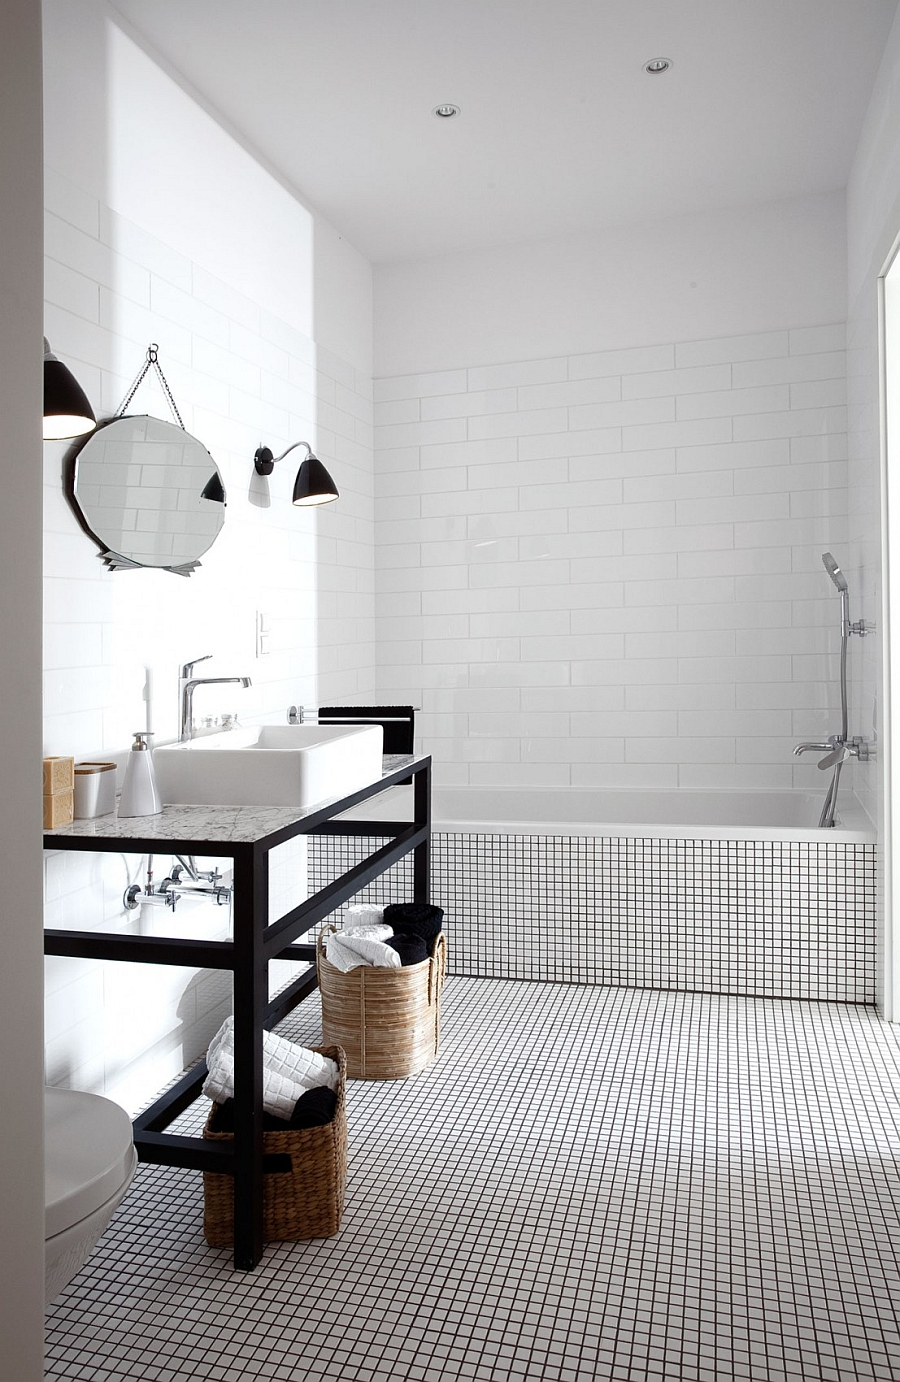 Wall sconce in the bathroom add drama even while saving up on space